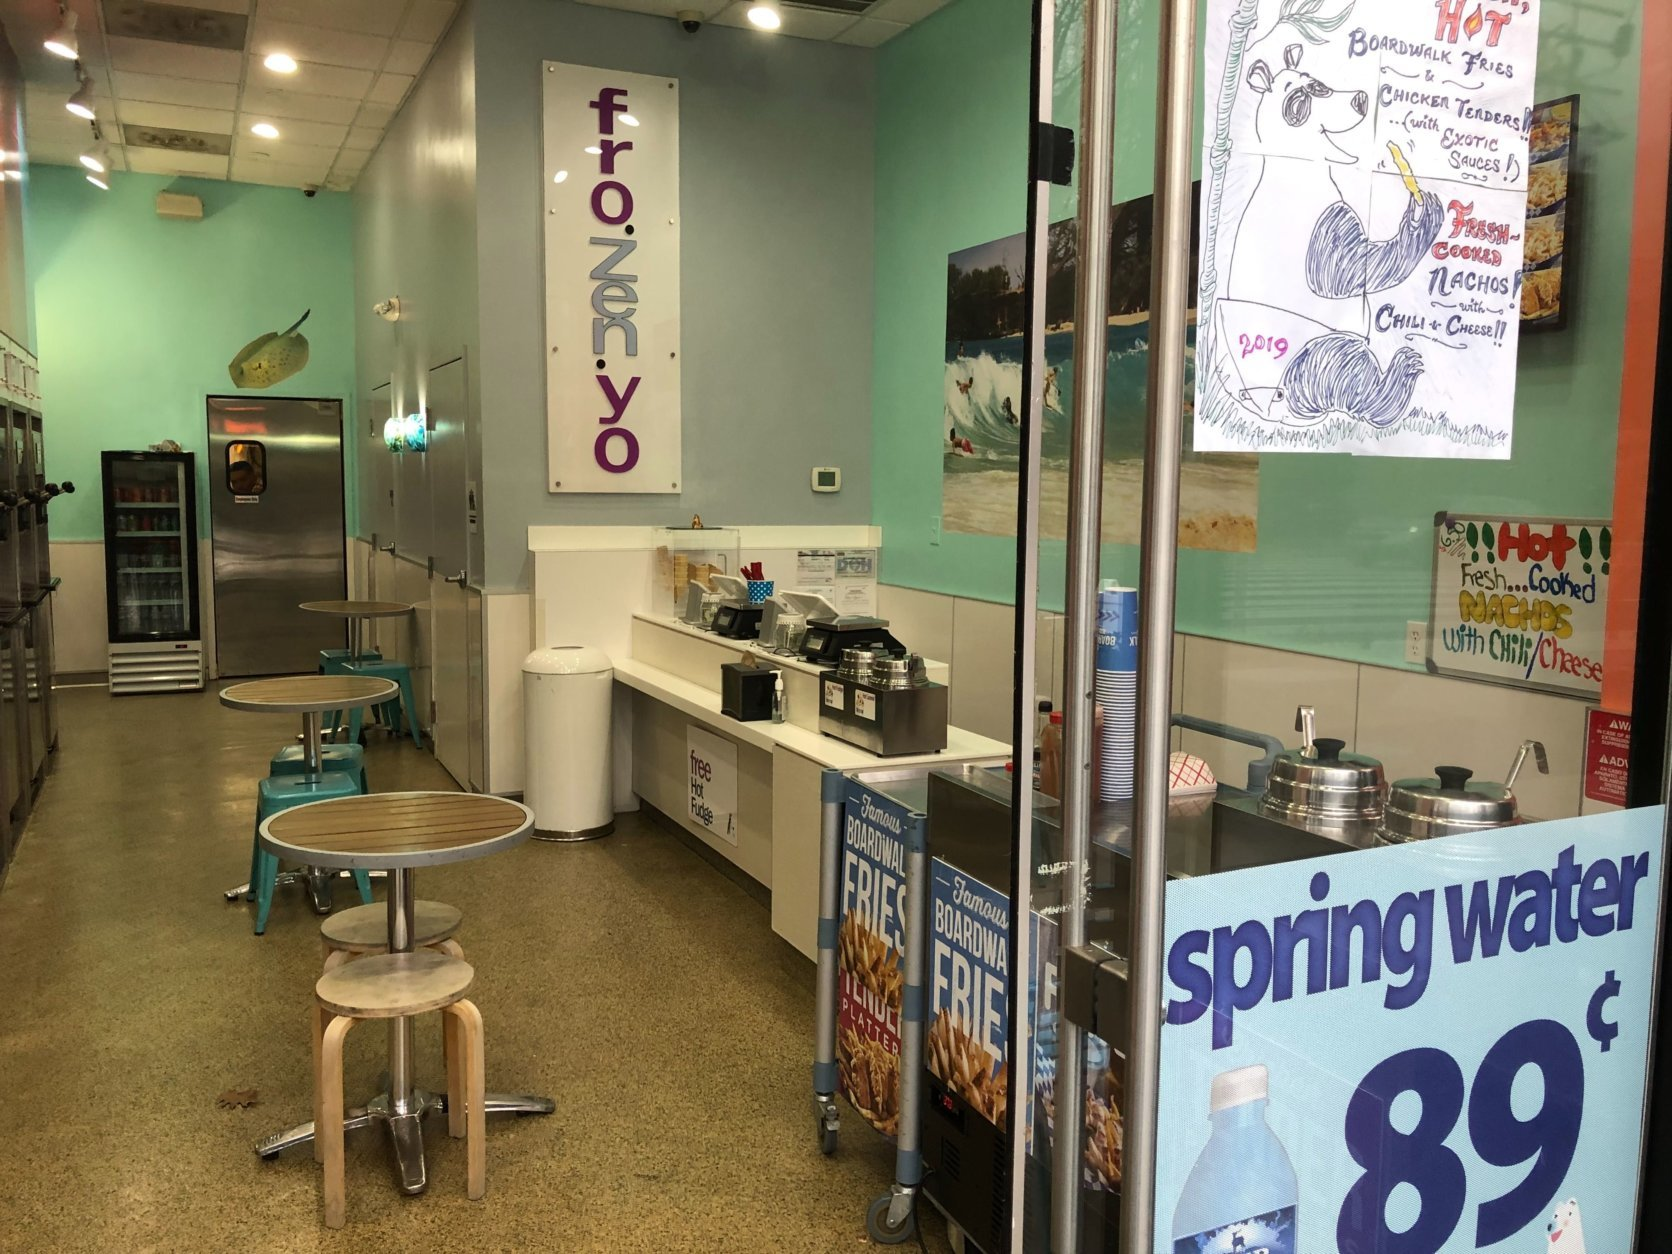 A visit to the area Wednesday afternoon revealed a welcoming open door at a frozen yogurt shop, but neither customers nor employees were evident. (WTOP/Kristi King)